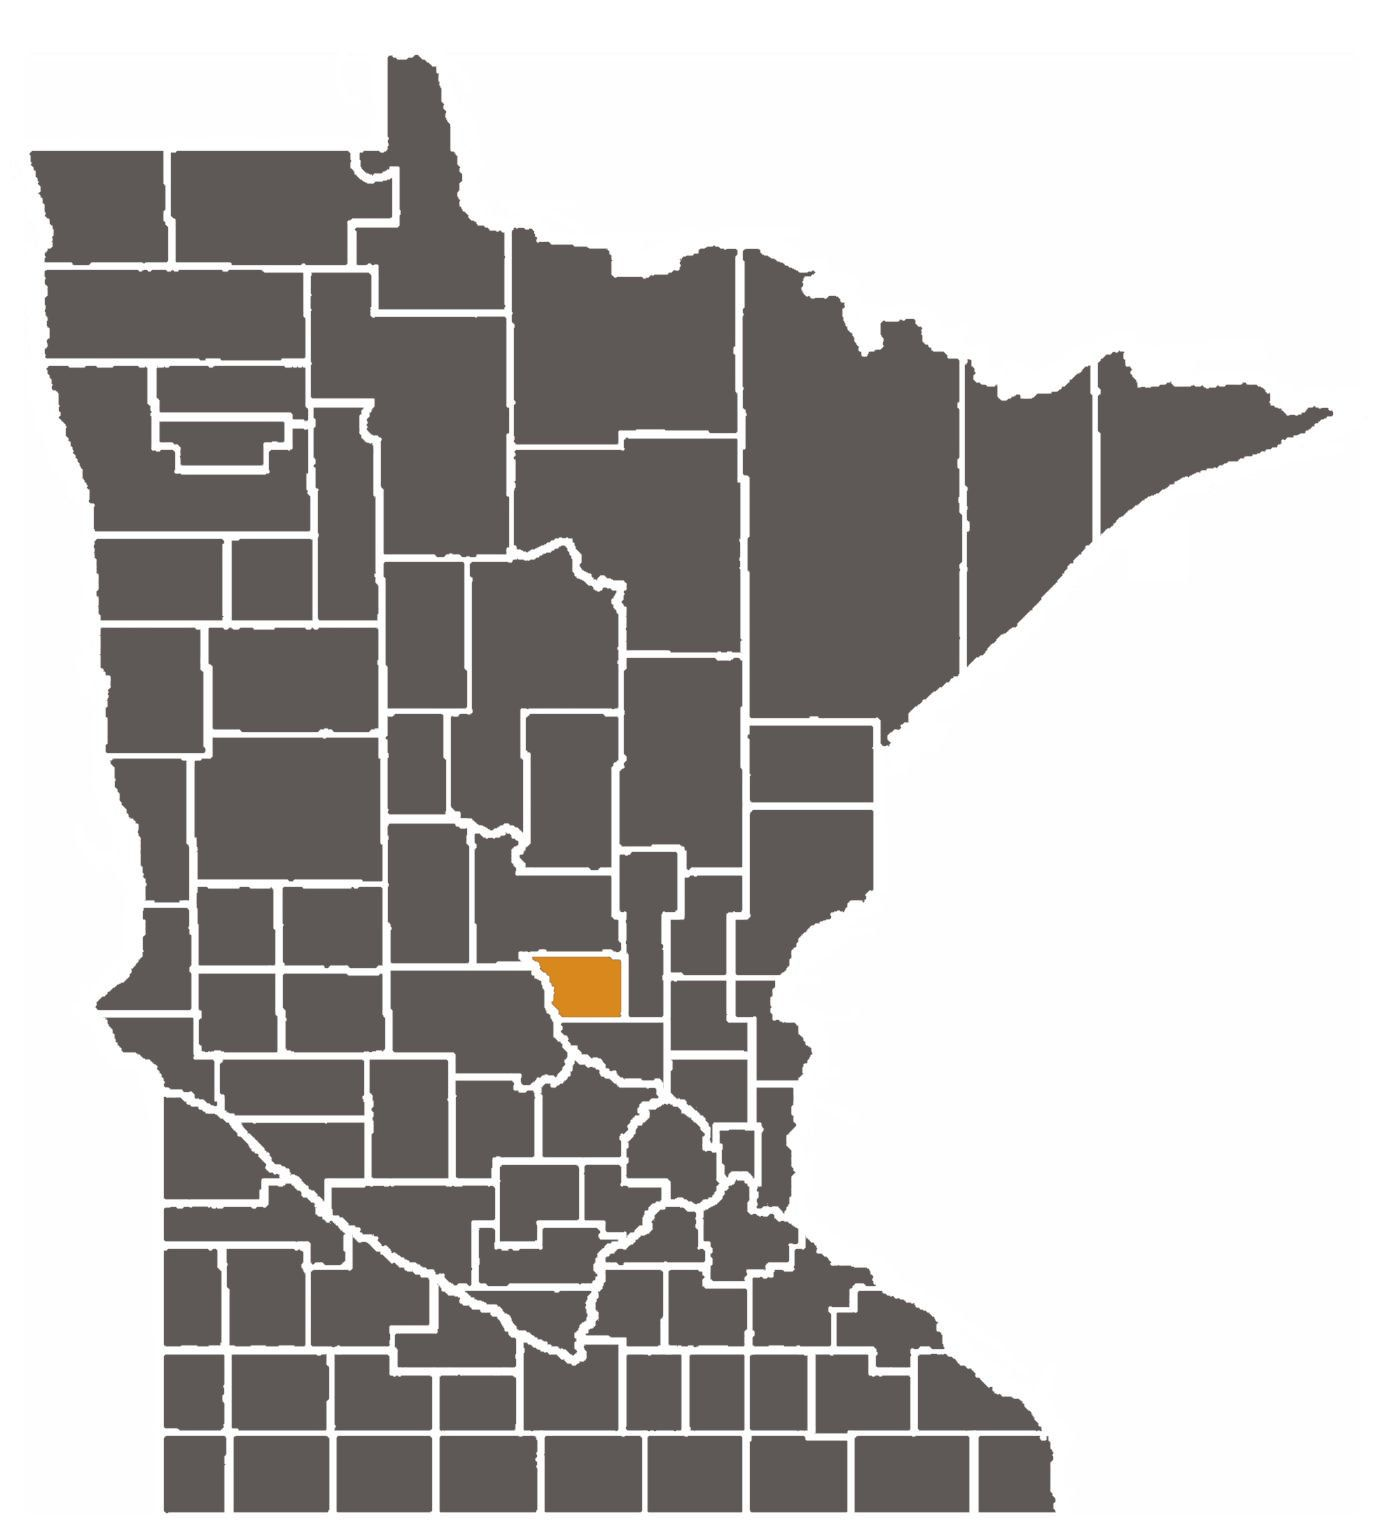 Minnesota map with Benton County highlighted